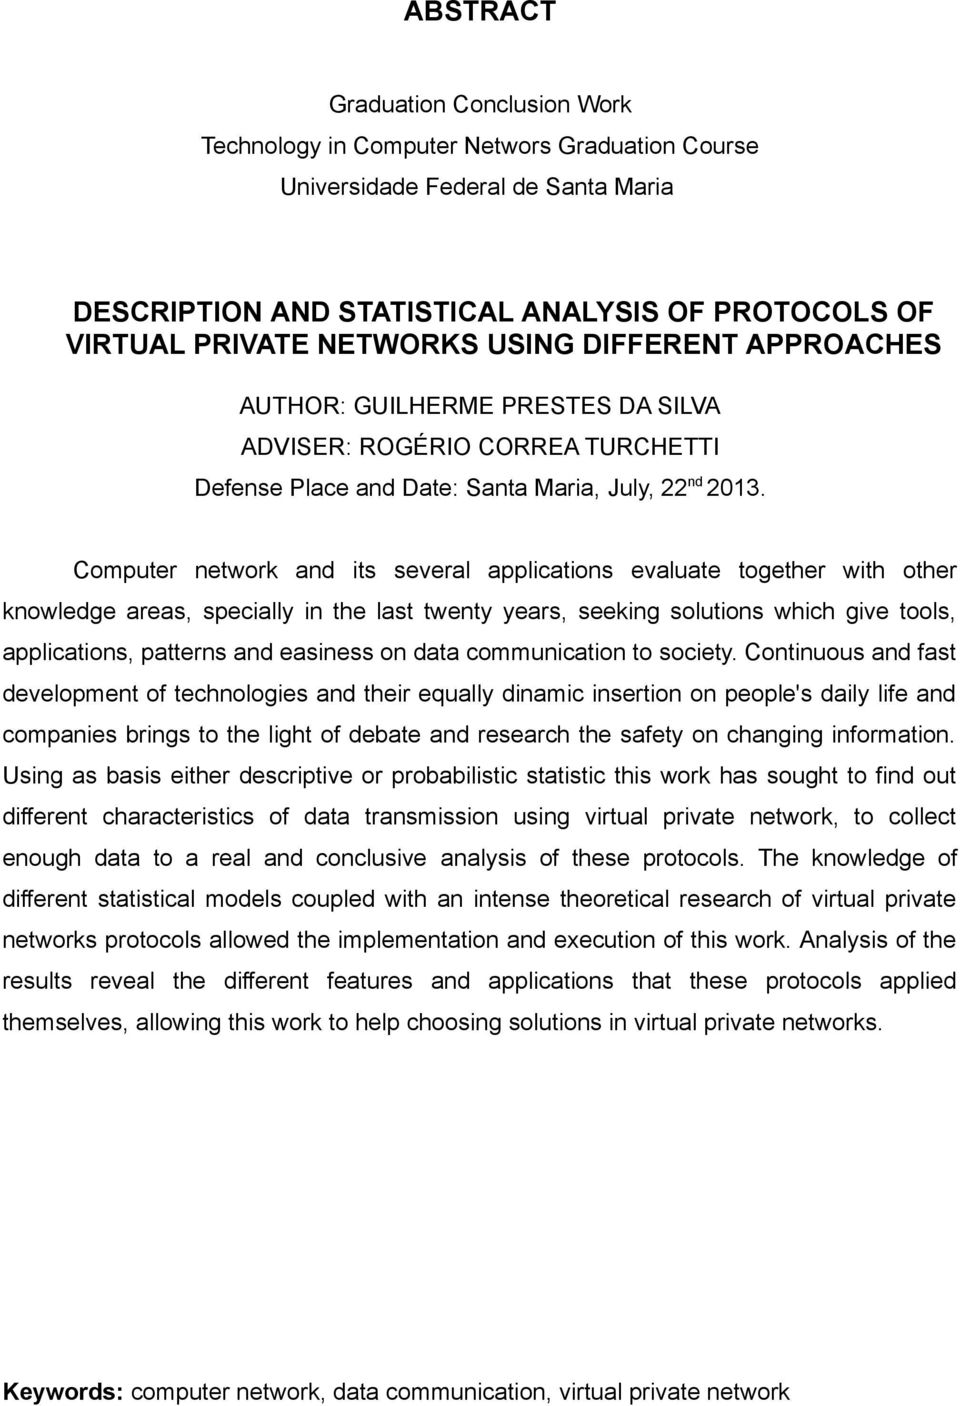 Computer network and its several applications evaluate together with other knowledge areas, specially in the last twenty years, seeking solutions which give tools, applications, patterns and easiness